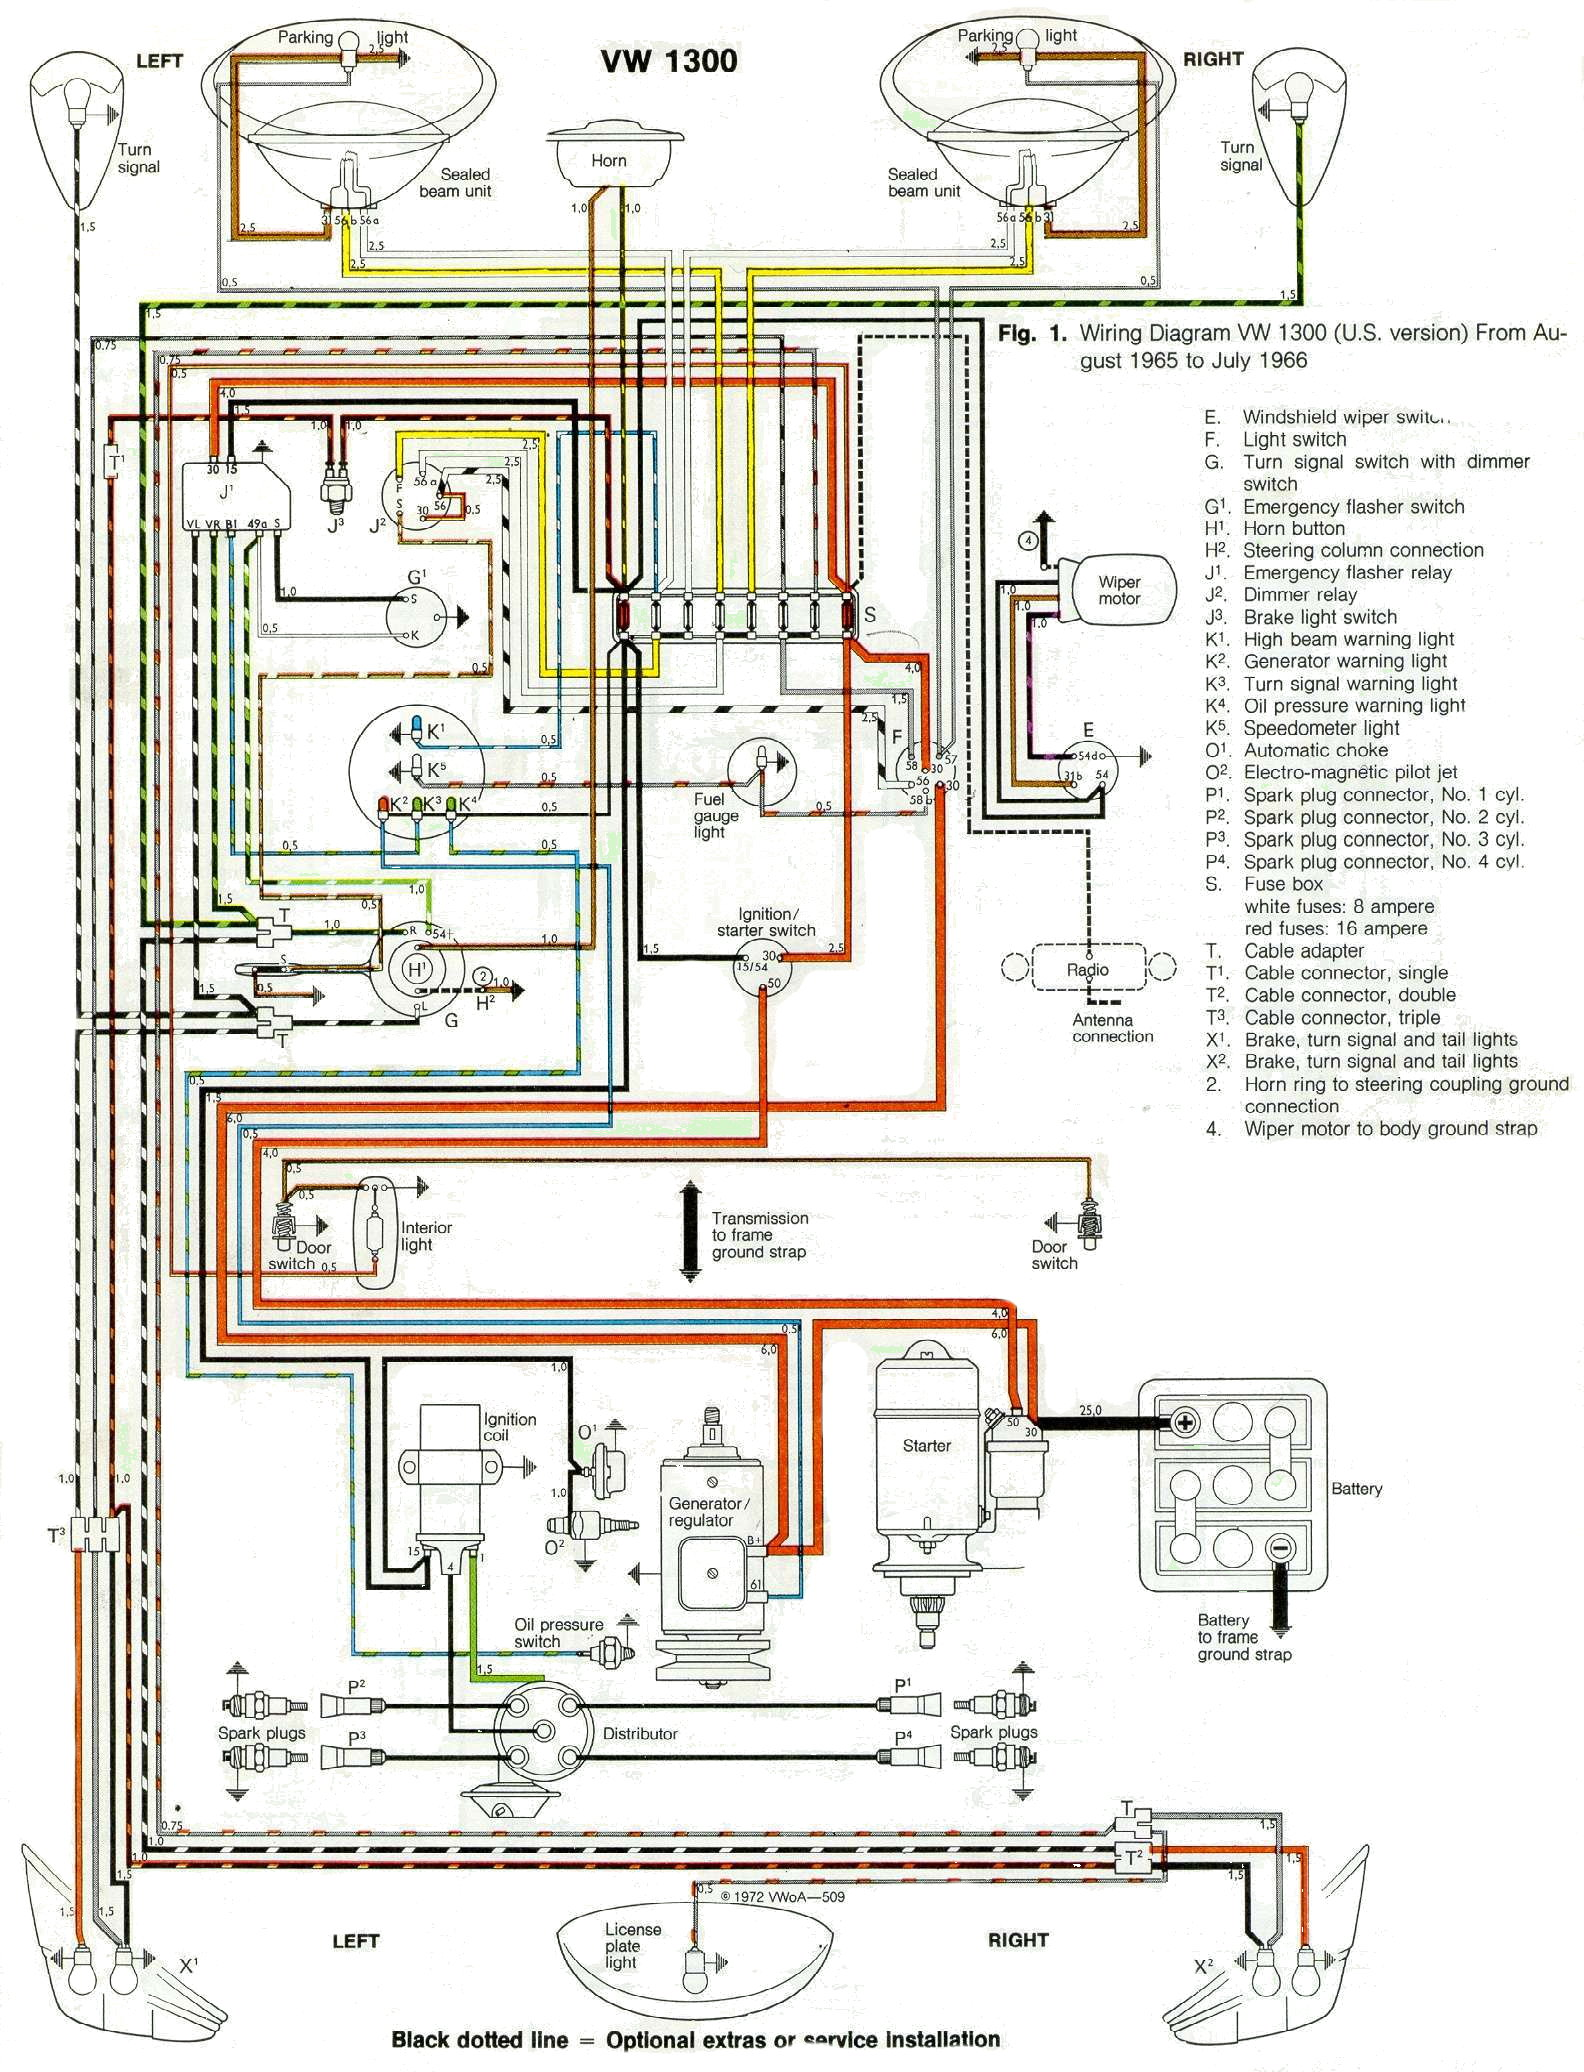 vw thing wiring wiring diagrams schematics 1974 VW Thing Wiring-Diagram and vw wiring harness diagram wiring diagrams schematics 1966 wiring diagram on vw trike wiring harness diagram for vw wiring harness diagram 2 vw thing wiring at Volkswagen Thing Wiring Harness